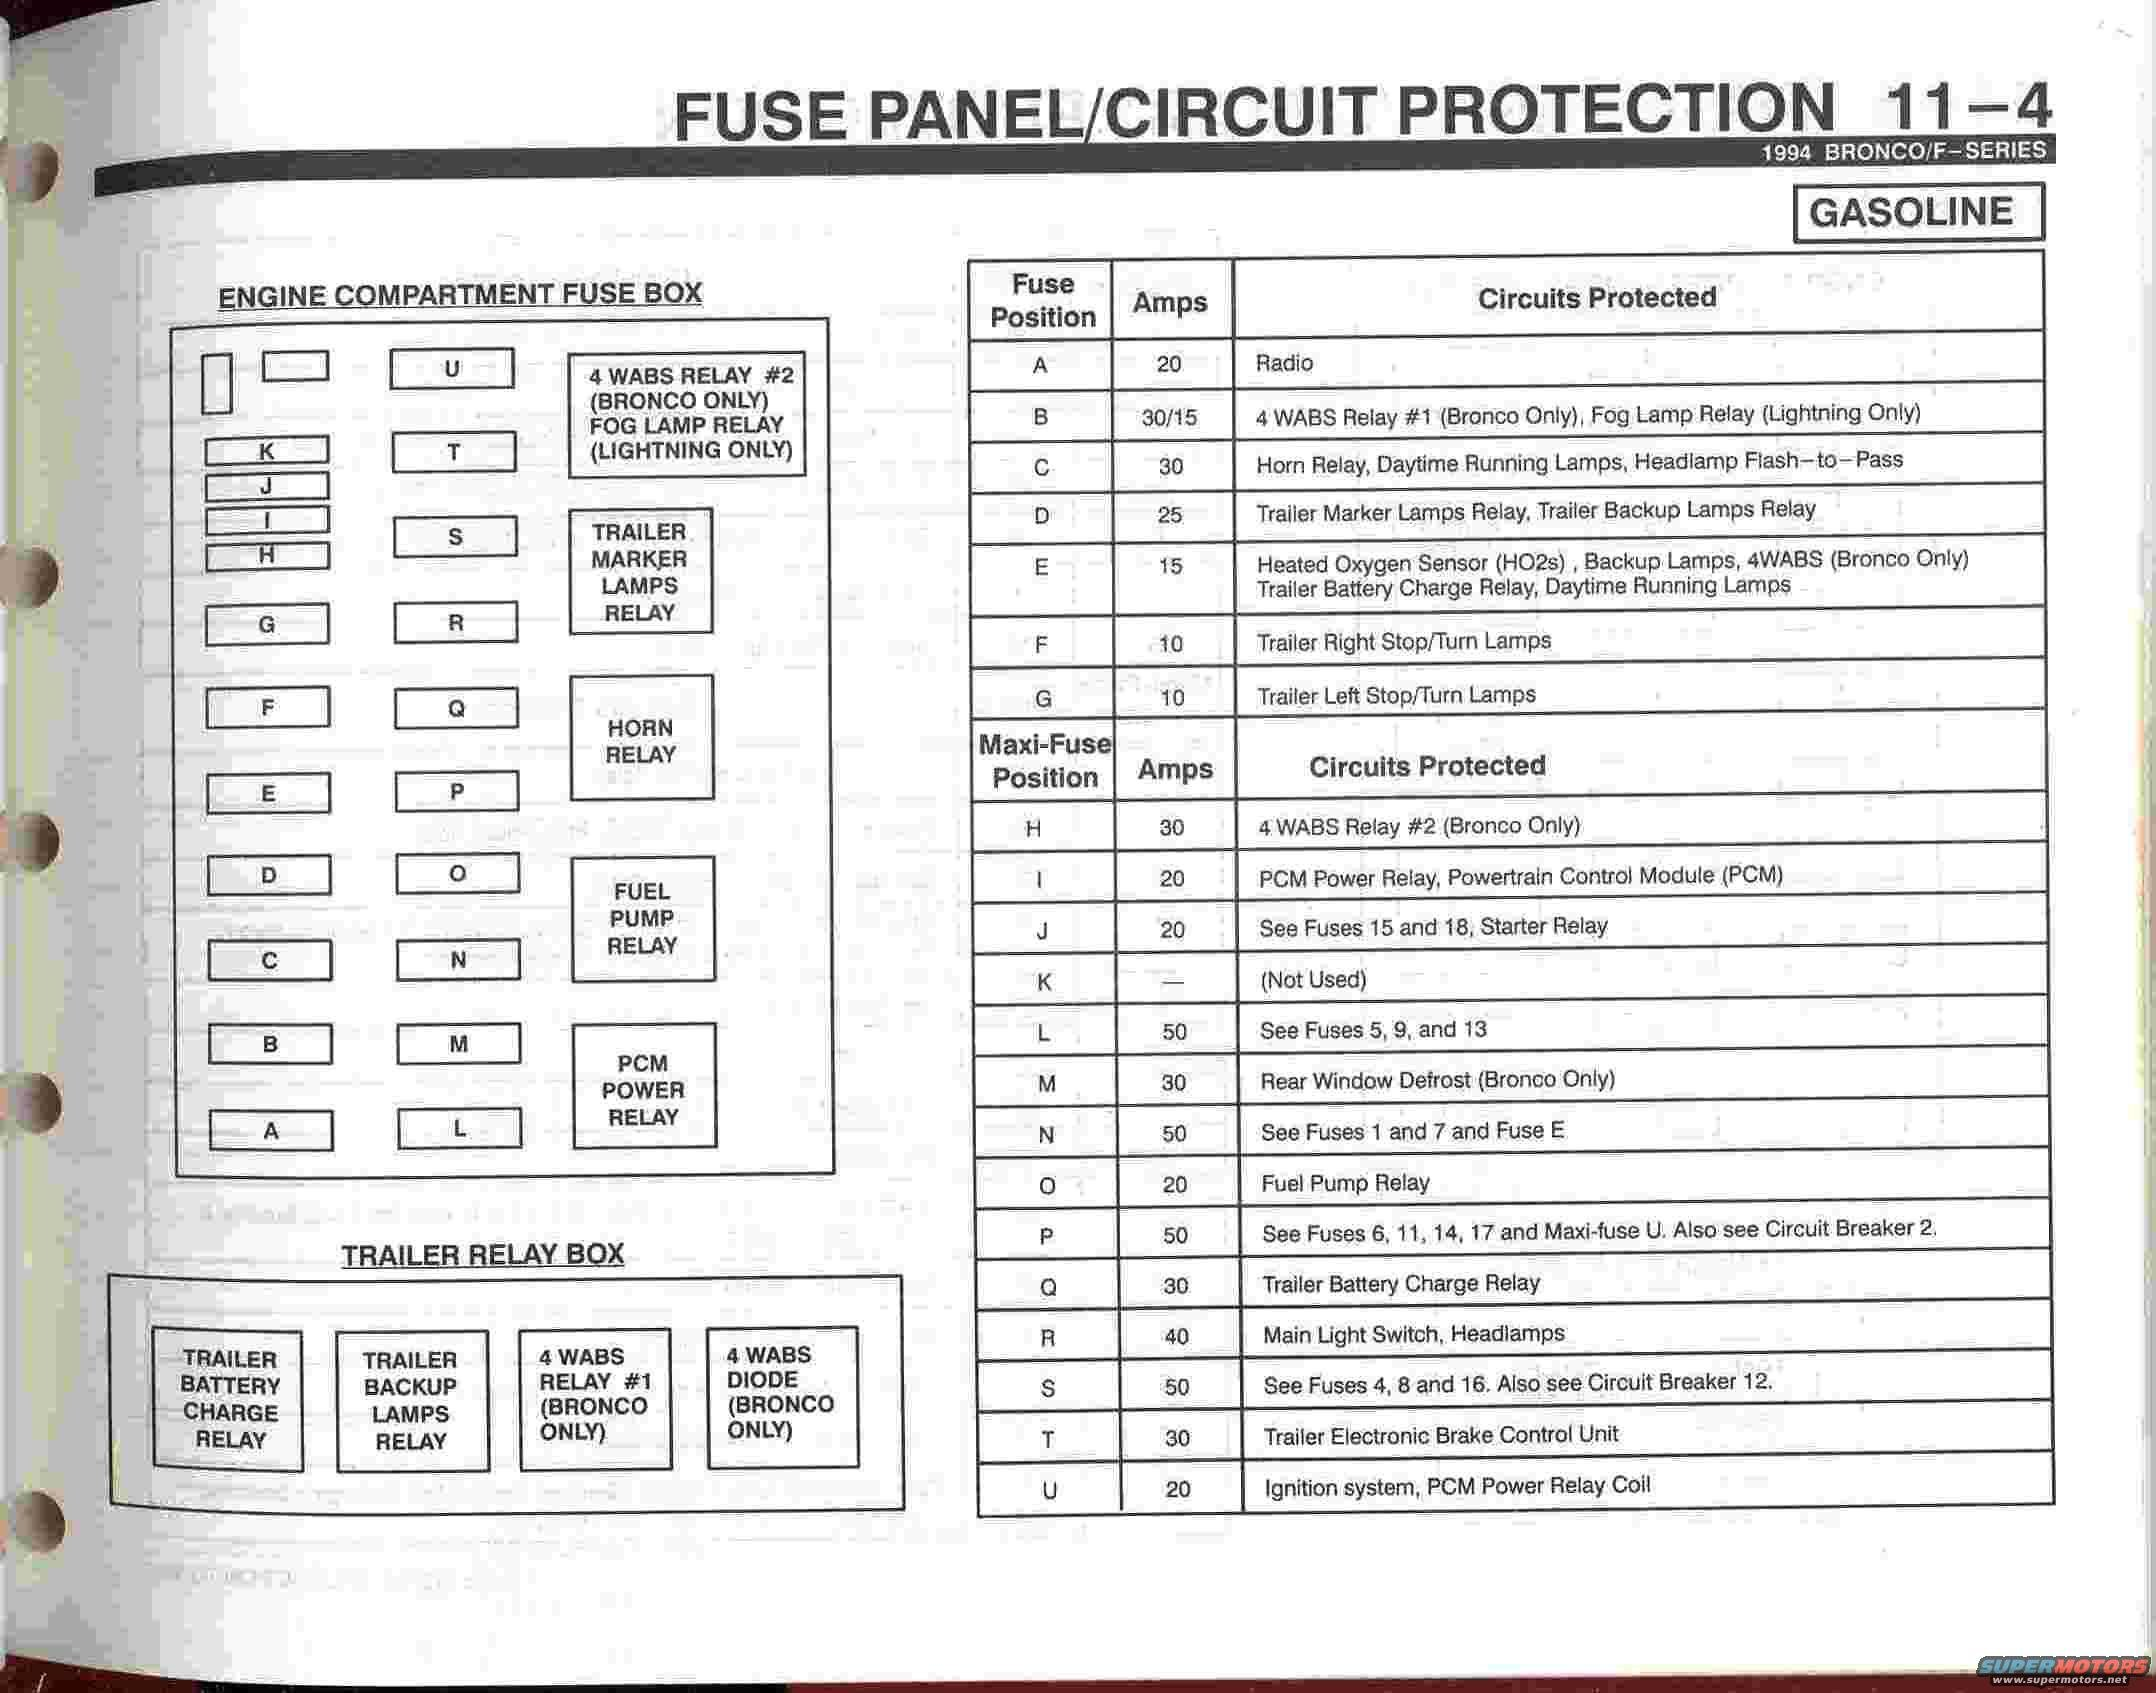 diagram of fuse box for 1994 bronco diagram of fuse box for 2009 ford f 150 fx4 fan fuses my 94 bronco endless restoration and build - page 61 ...